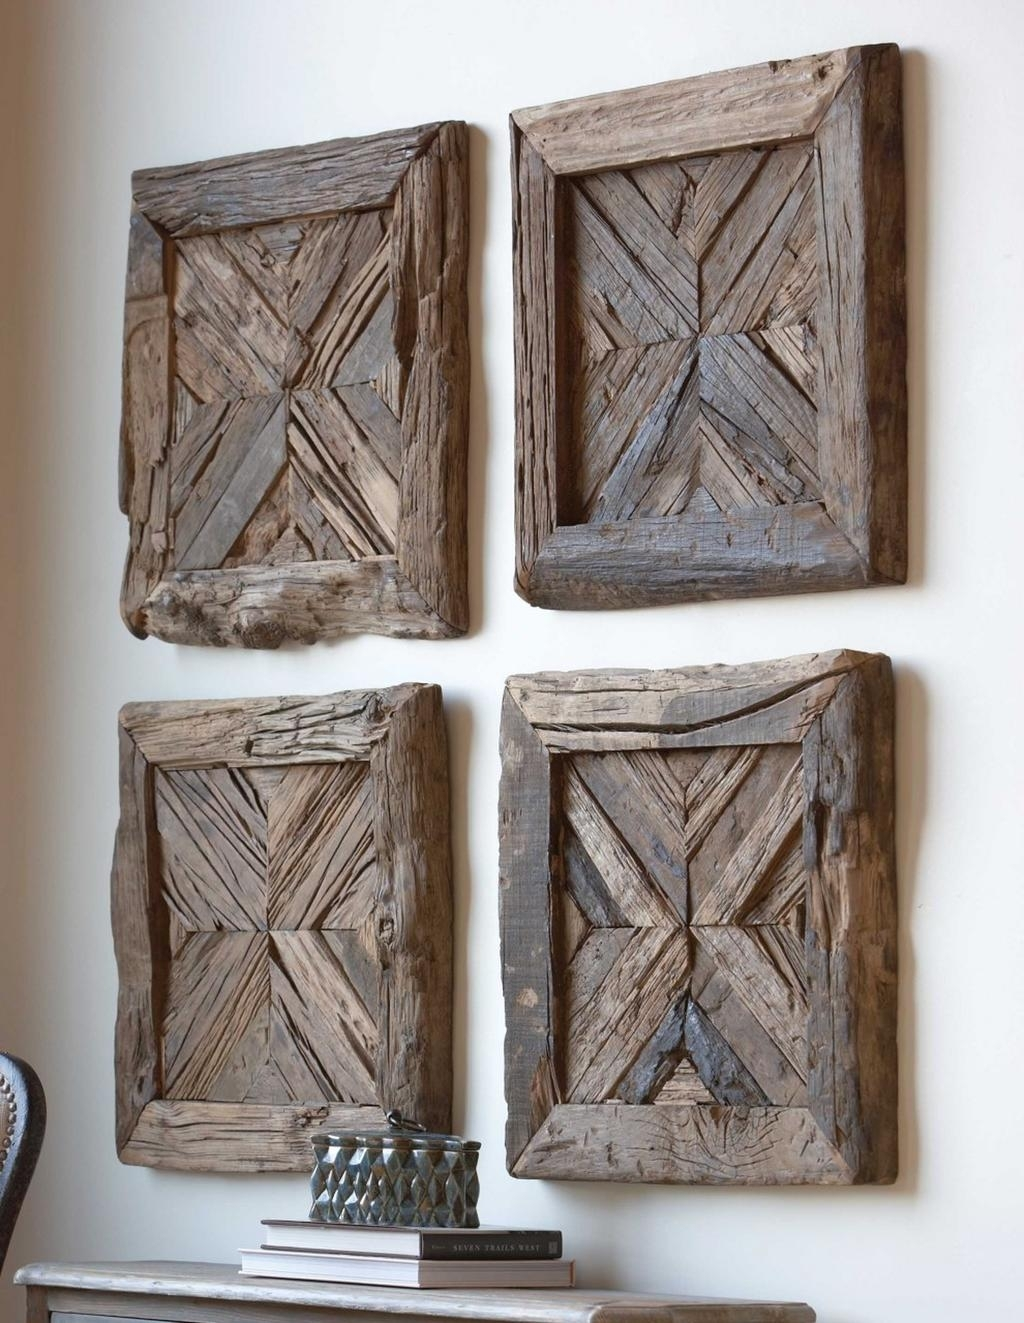 63299+ Great Examples Of Rustic Wall Art Furniture Home Design Ideas For Latest Rustic Wall Art (View 4 of 15)